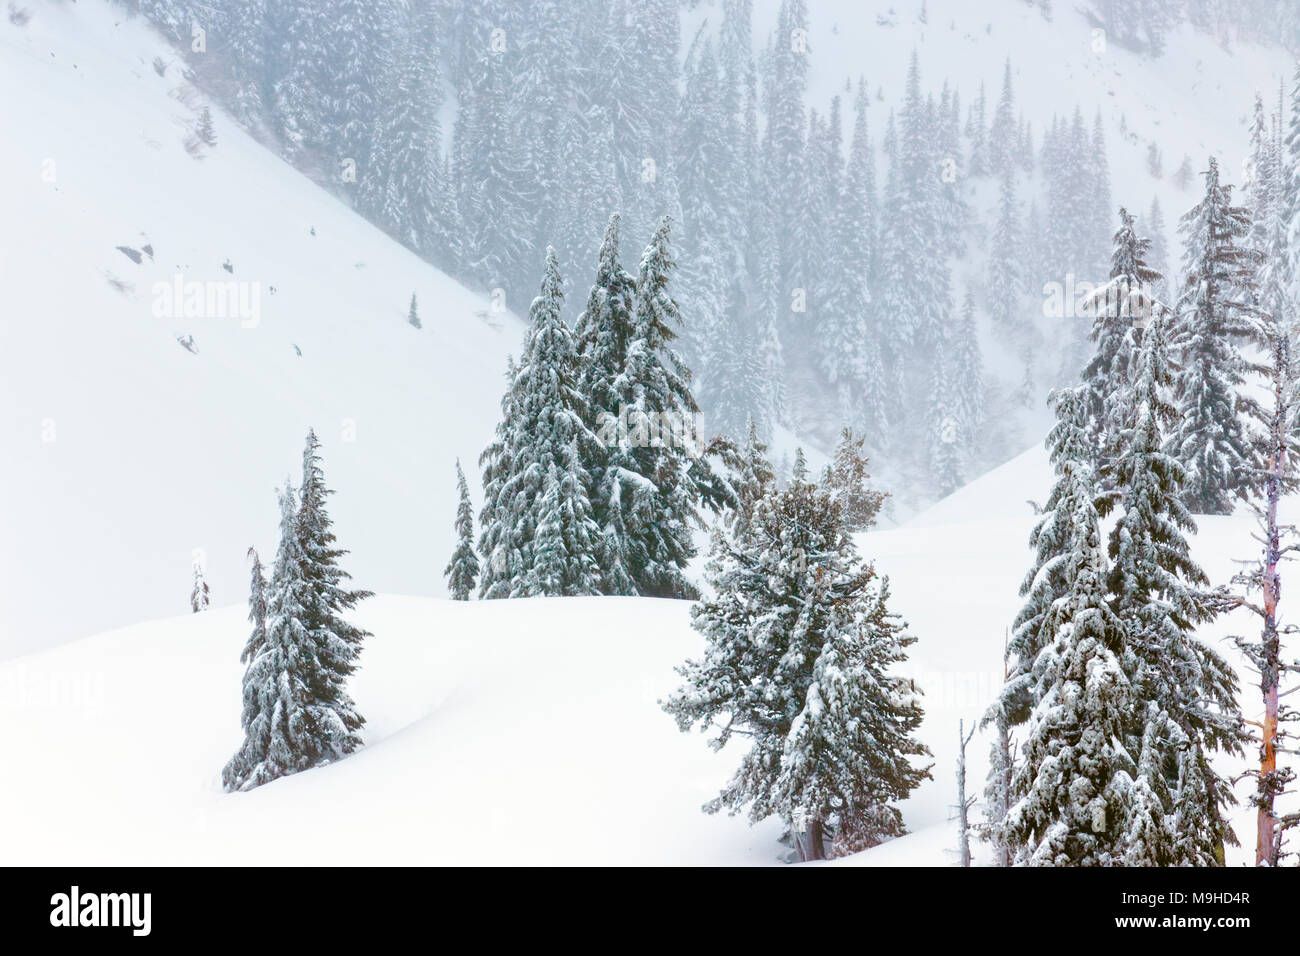 43,160.09819 Winter landscape conifer pine trees forest close-up snowy rolling Mt hills, in a snowstorm, snowing - Stock Image